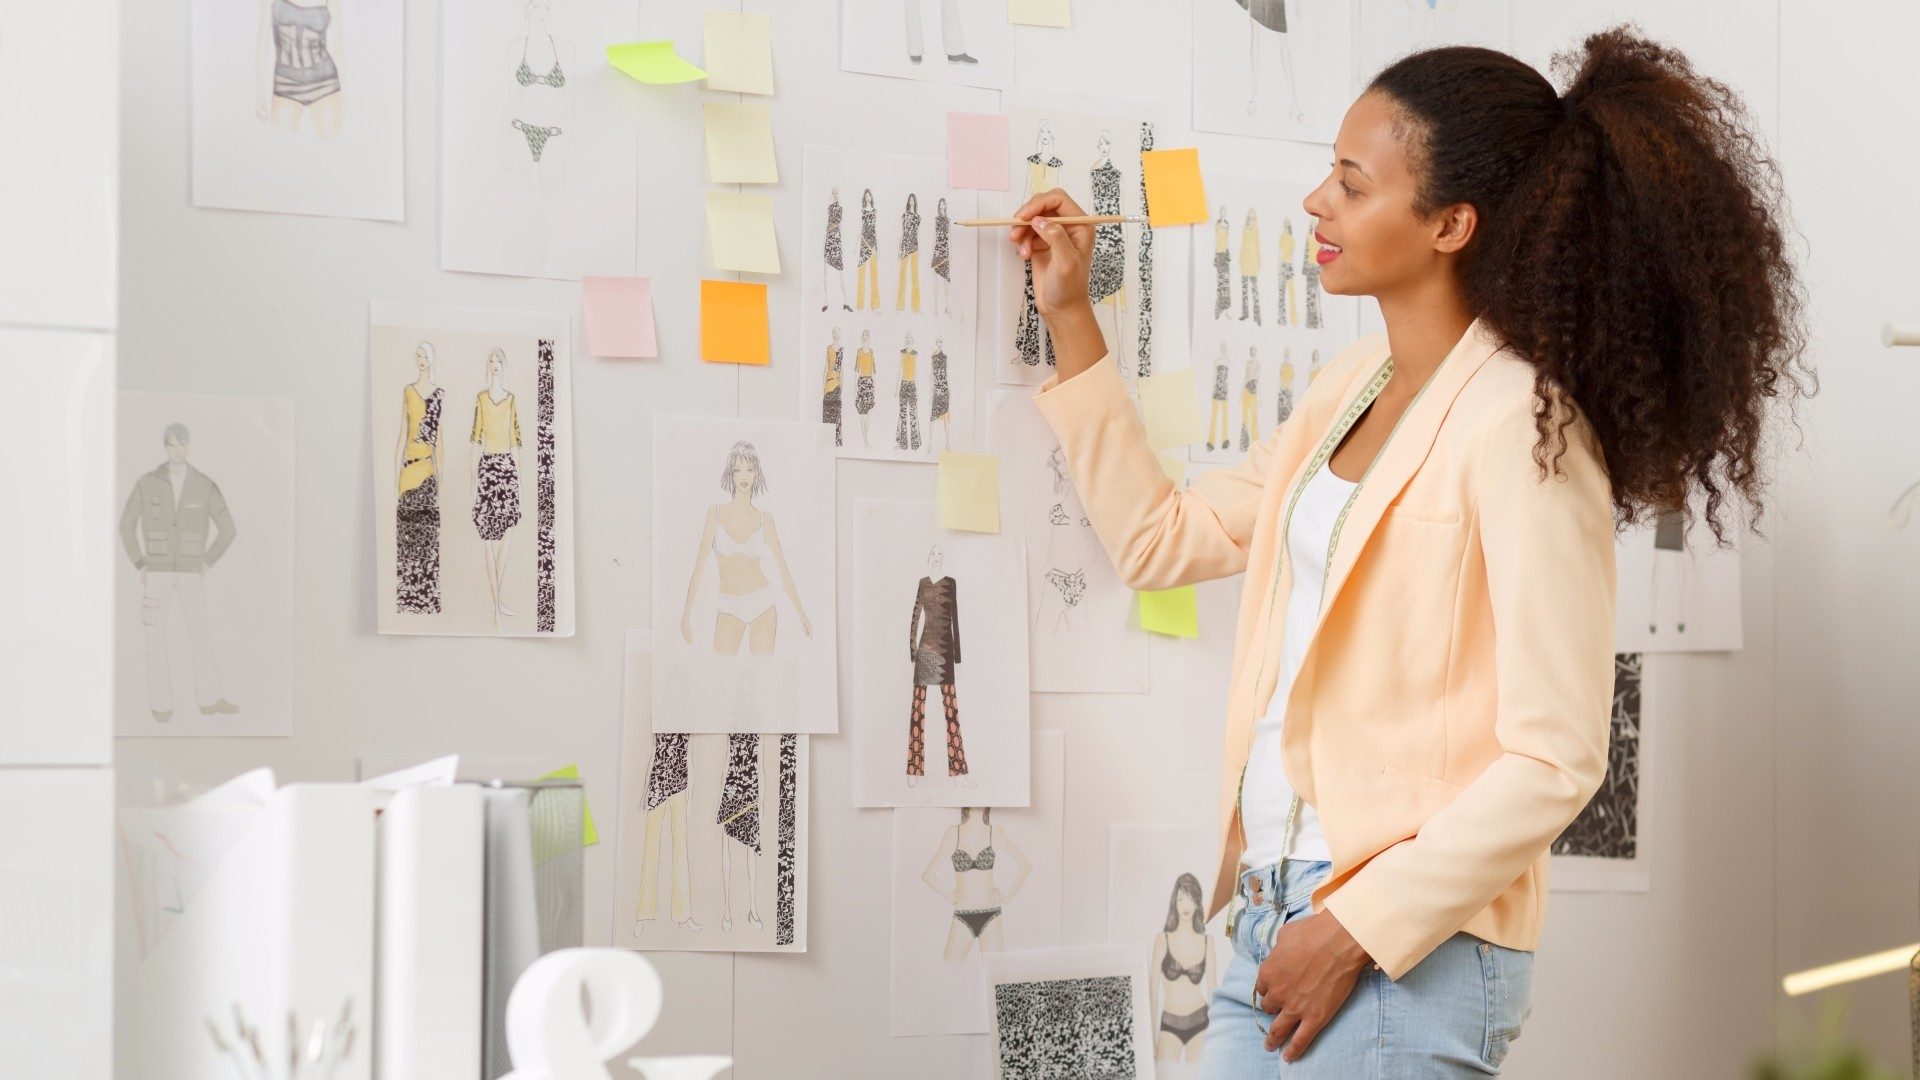 Exceptional One Of The Aspects Of Creating Great Content Thatu0027s Relevant For Fashion  Students Is Ensuring That The Visuals We Use Are Relevant, Current, Topical  And Of ...